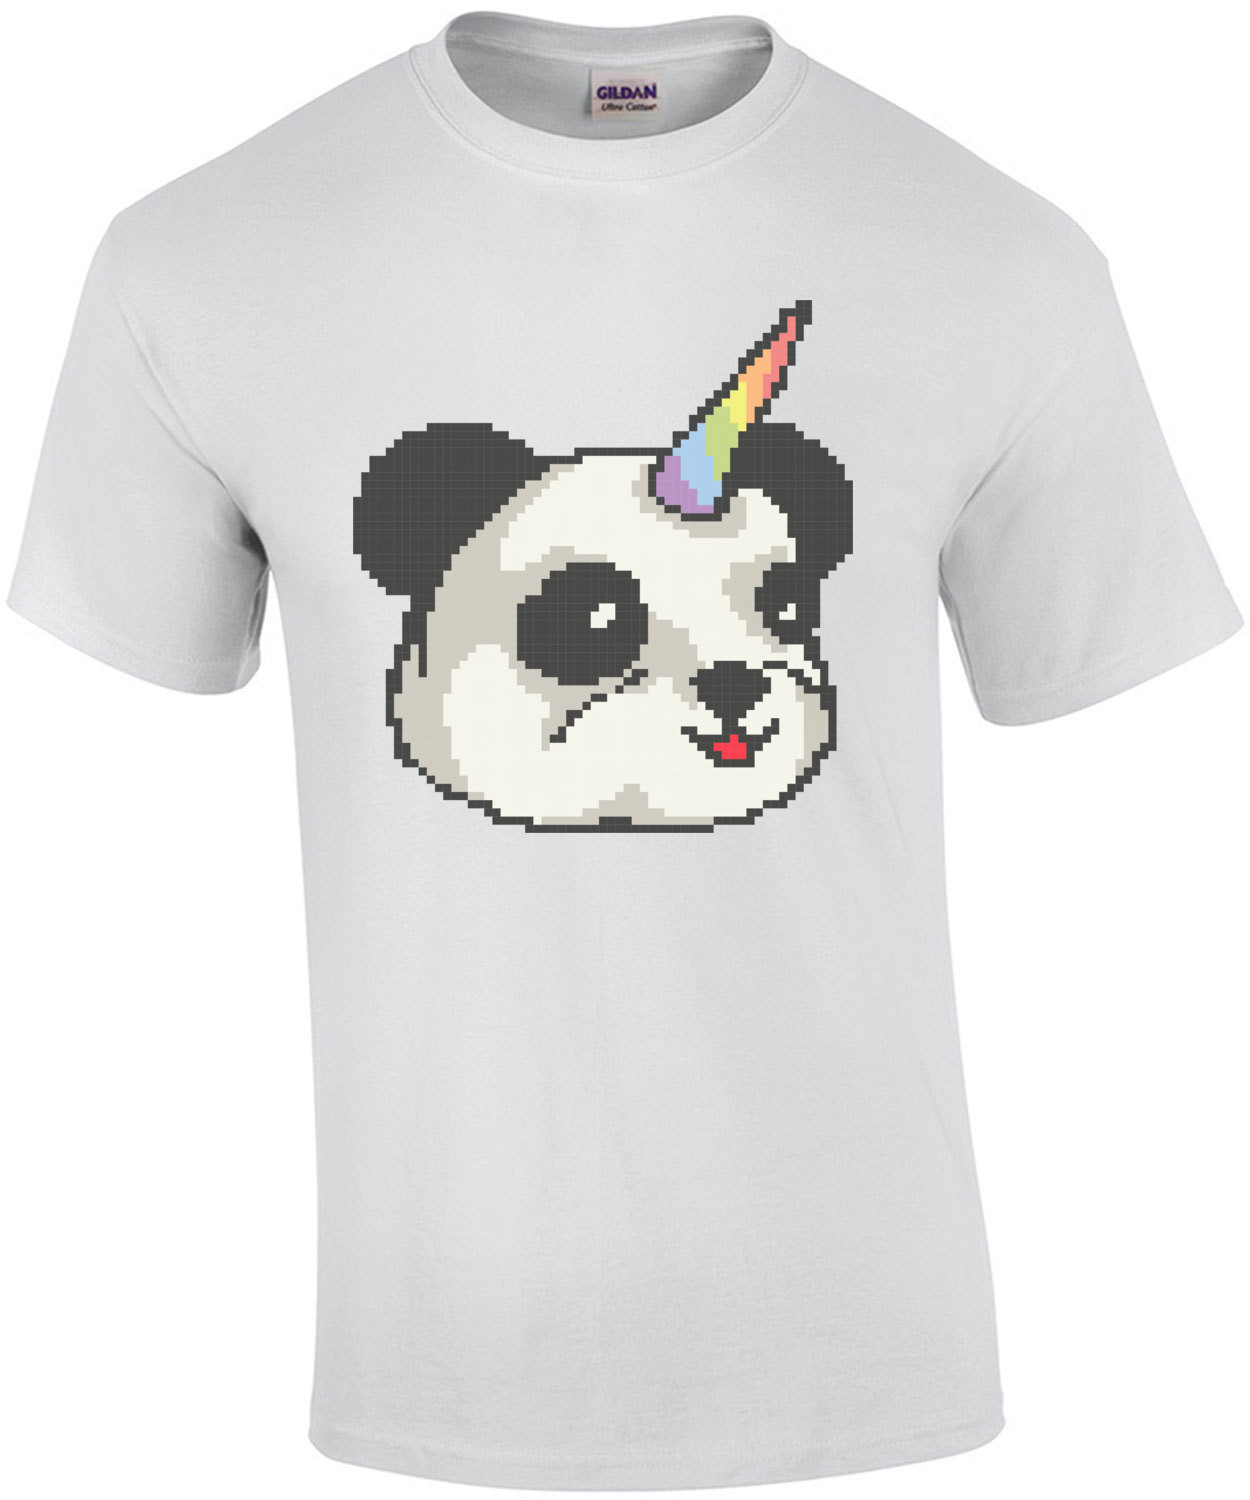 Panda Unicorn Cute Retro T-Shirt